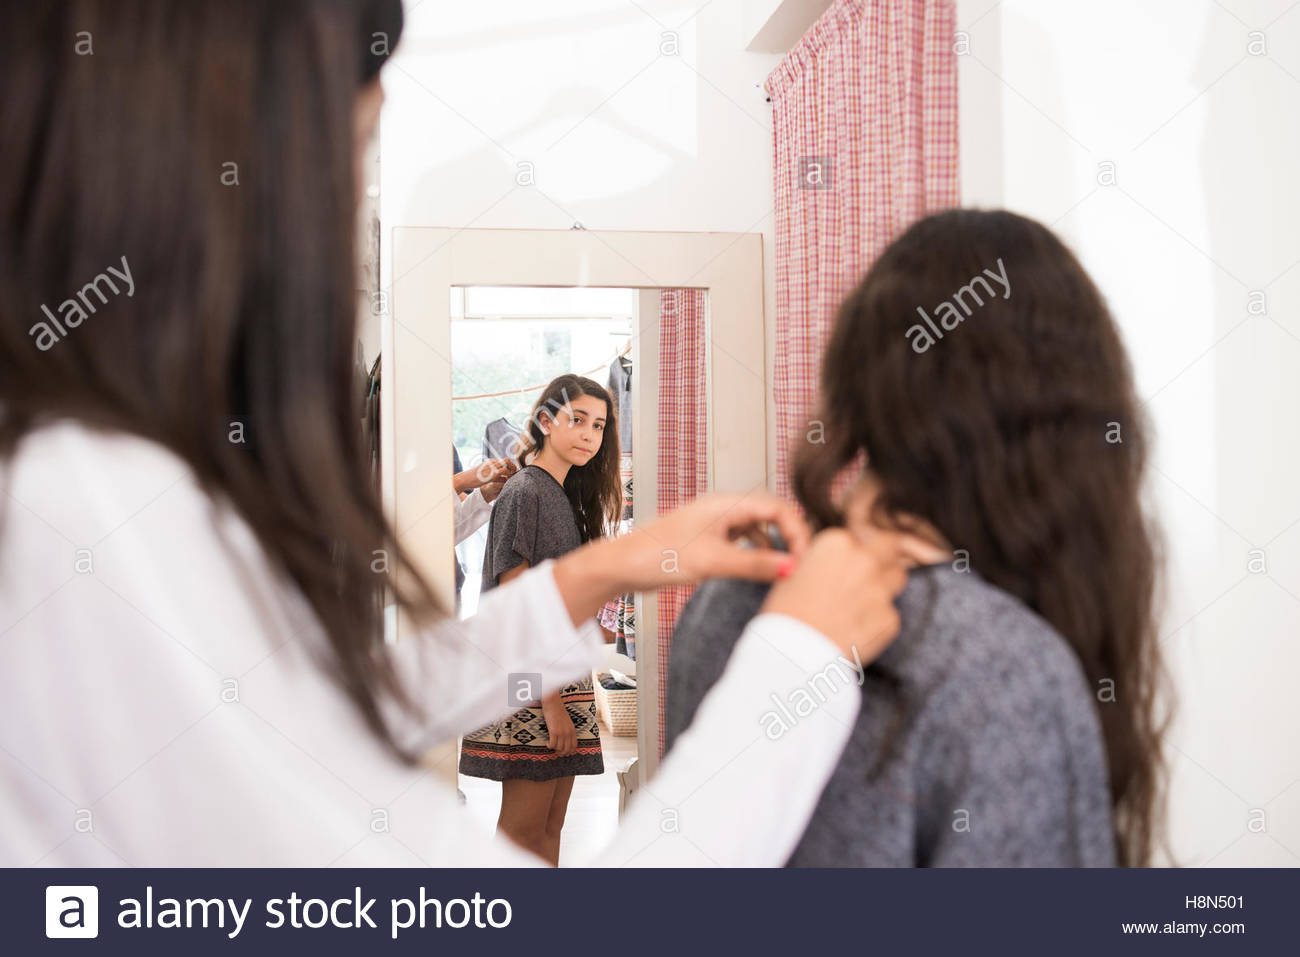 Mature woman and girl (10-11) in clothes store - Stock Image